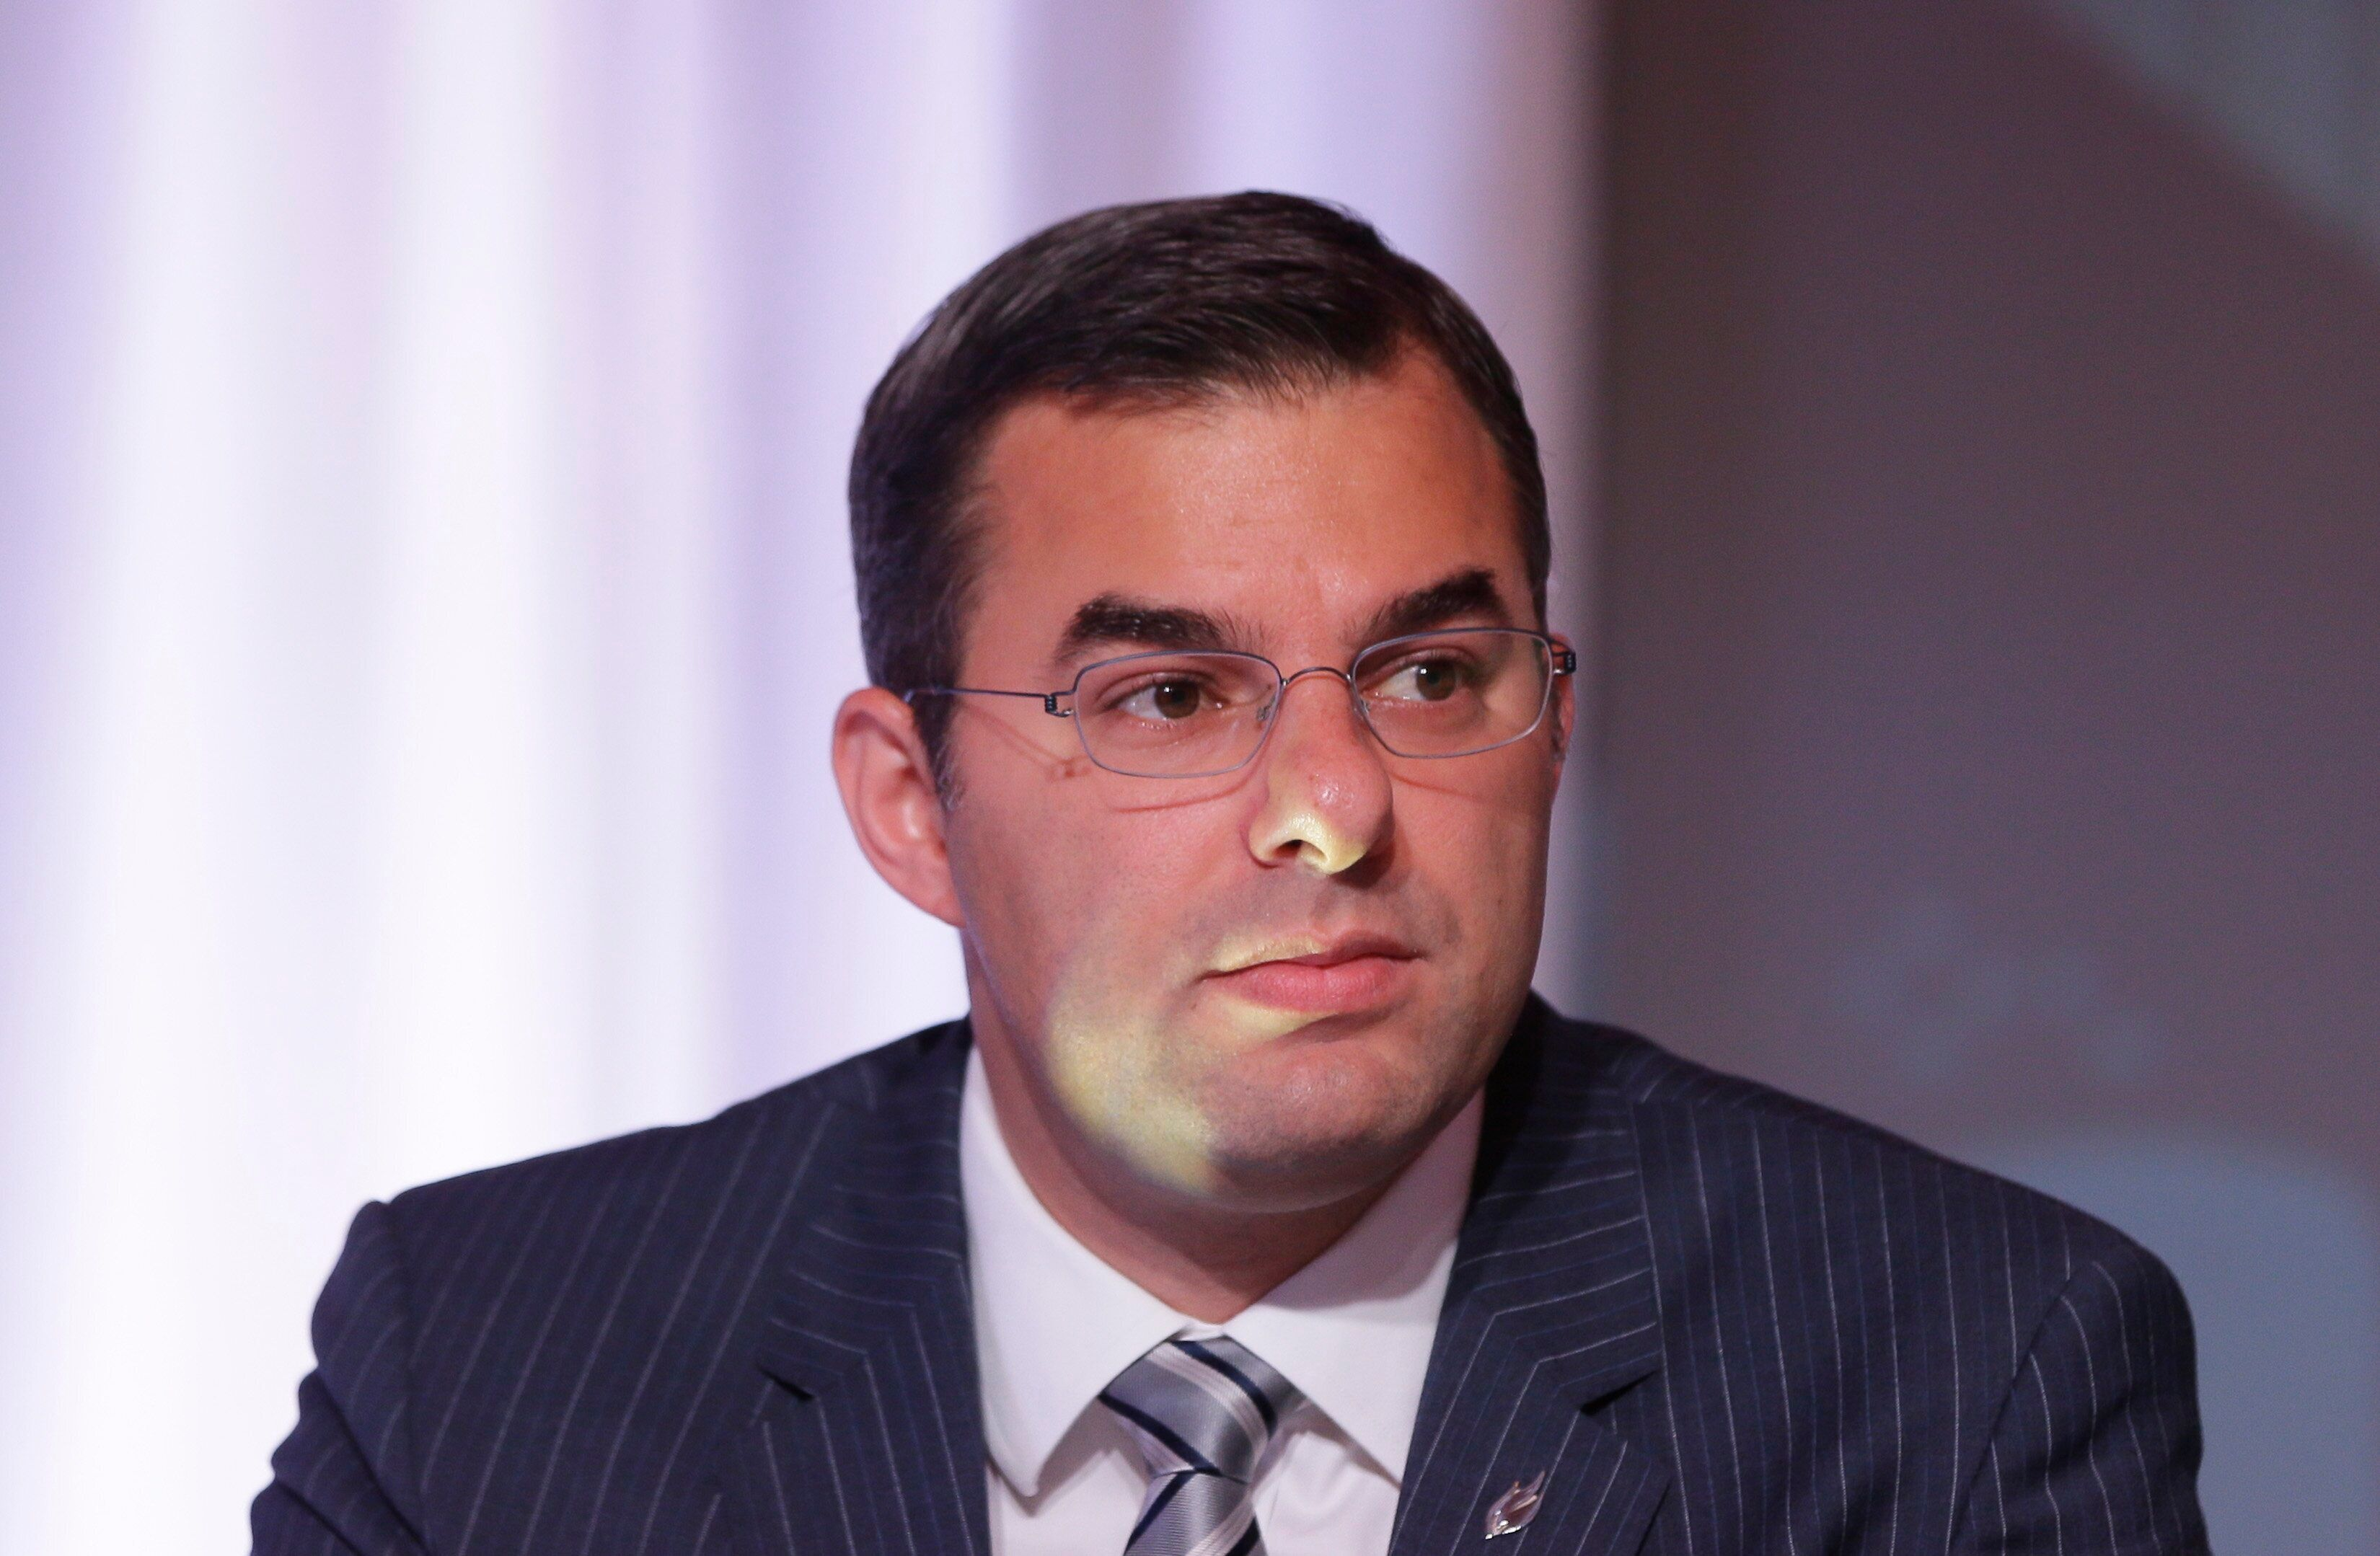 U.S. Rep. Justin Amash, R-Mich., is seen during a congressional panel at the 2016 Mackinac Republican Leadership Conference, Saturday, Sept. 19, 2015, in Mackinac Island, Mich. (AP Photo/Carlos Osorio)